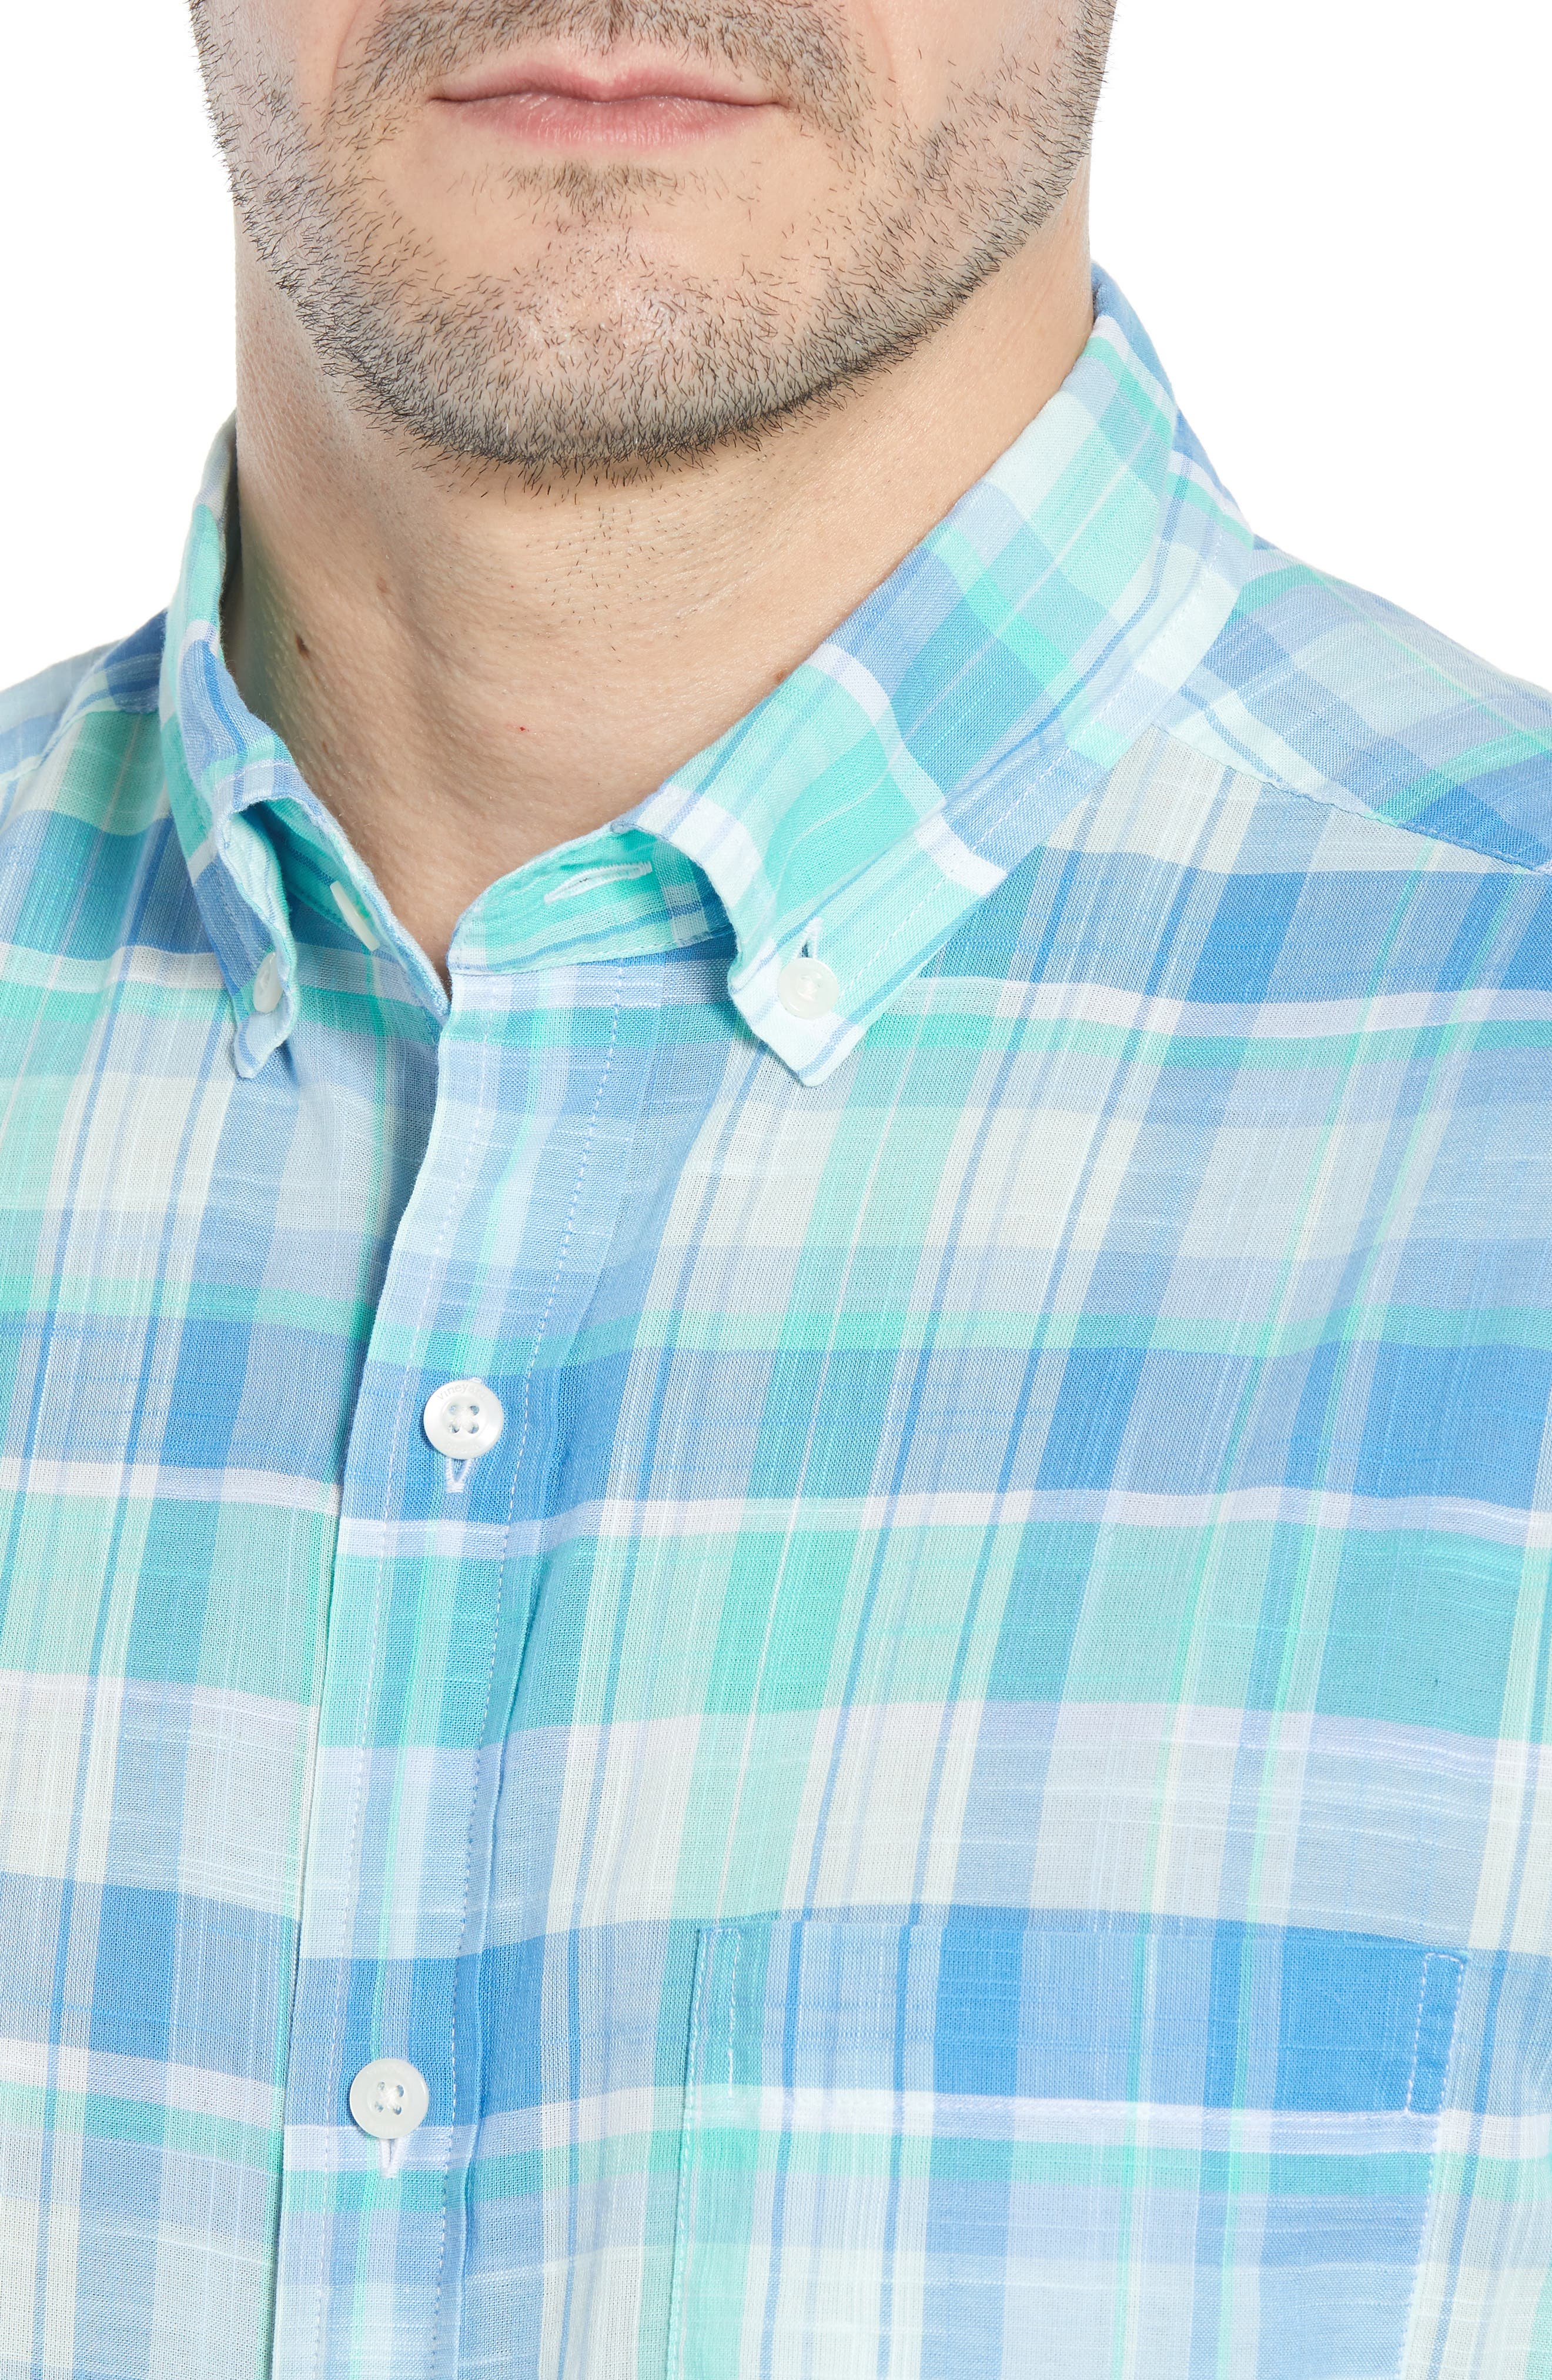 Homer Pond Murray Classic Fit Plaid Sport Shirt,                             Alternate thumbnail 4, color,